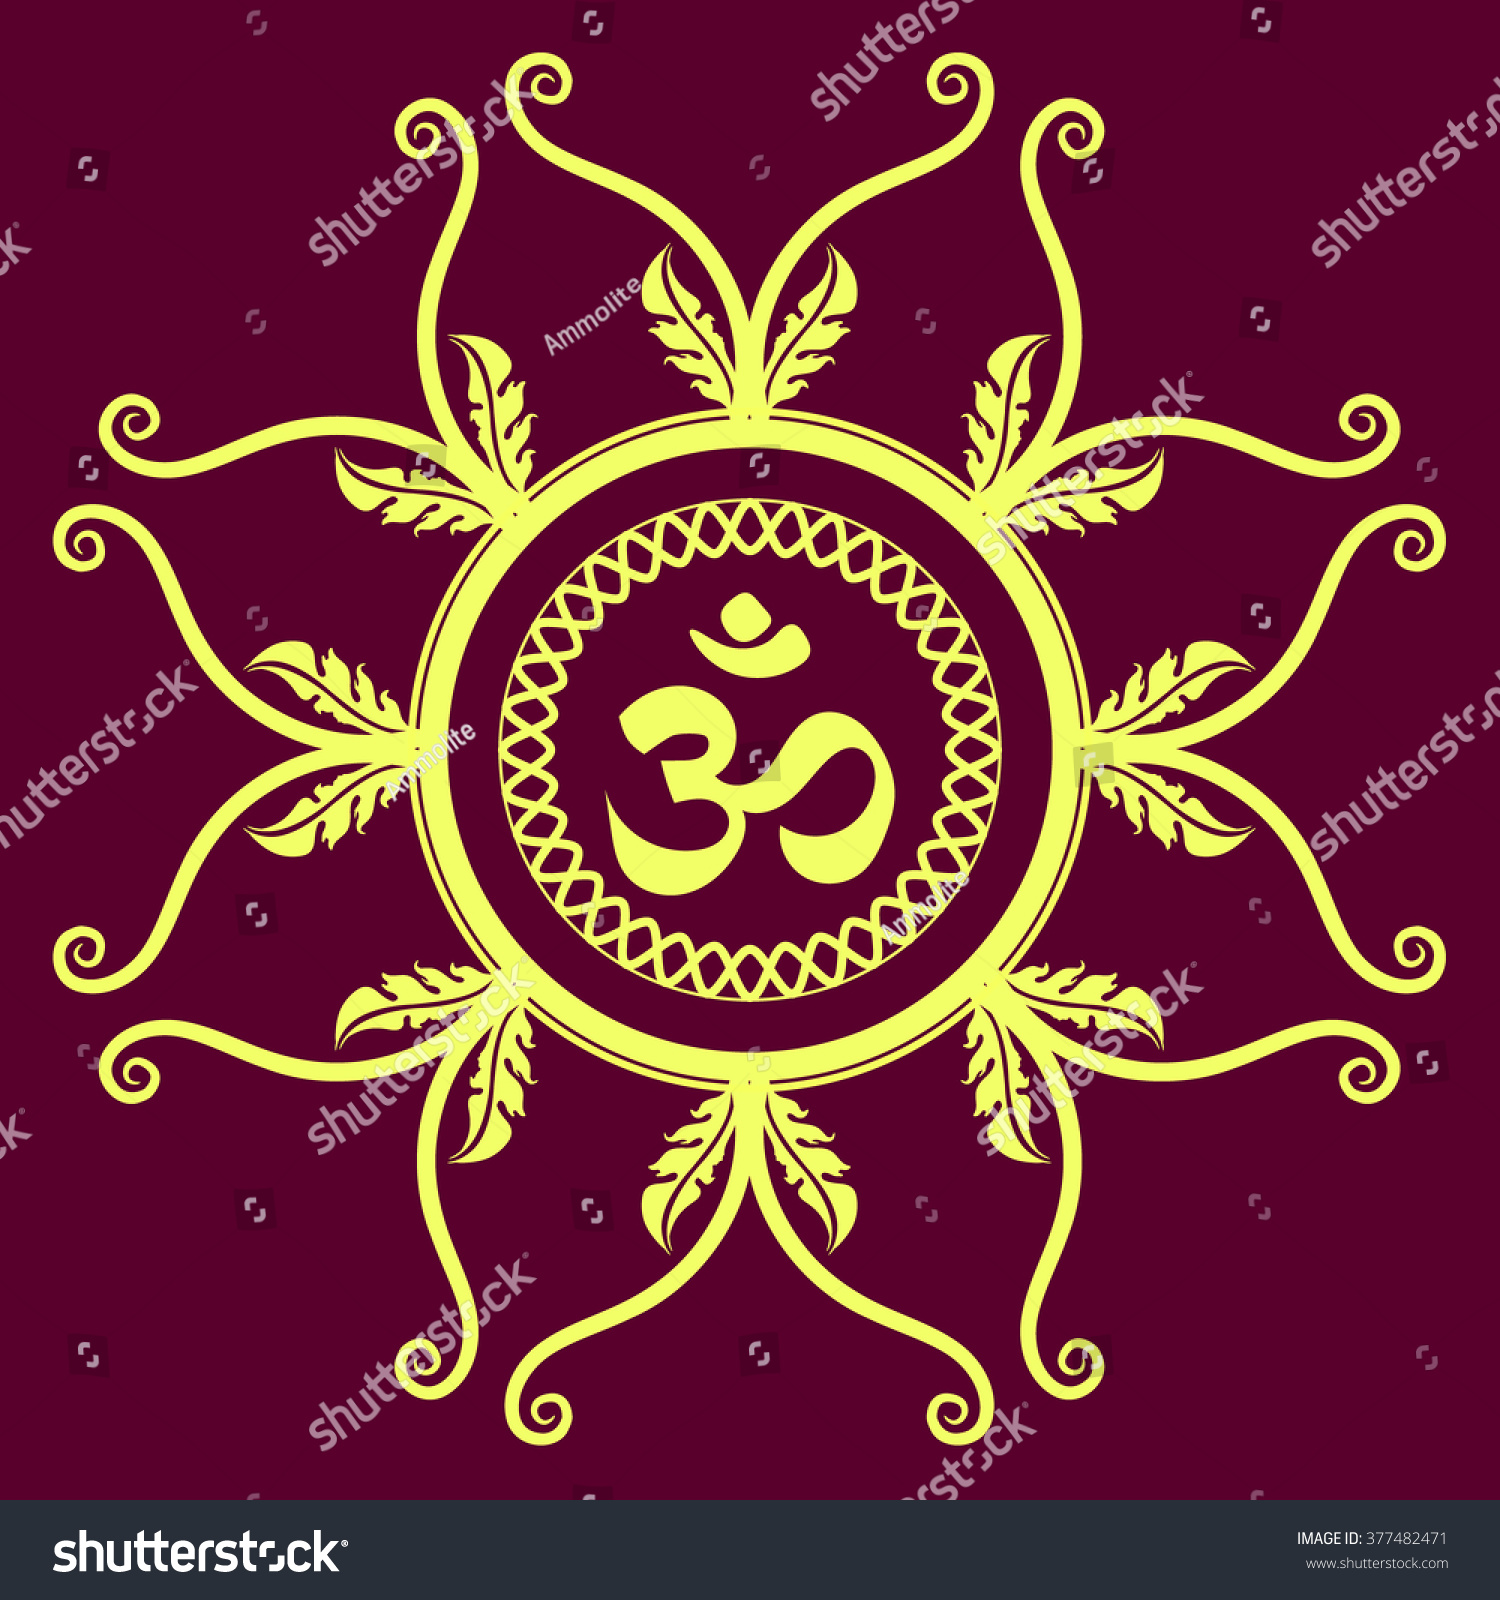 Buddhist om symbol meaning image collections symbol and sign ideas imgenes 1000 images about aum on pinterest om om and disea ohm symbol meaning in buddhism biocorpaavc